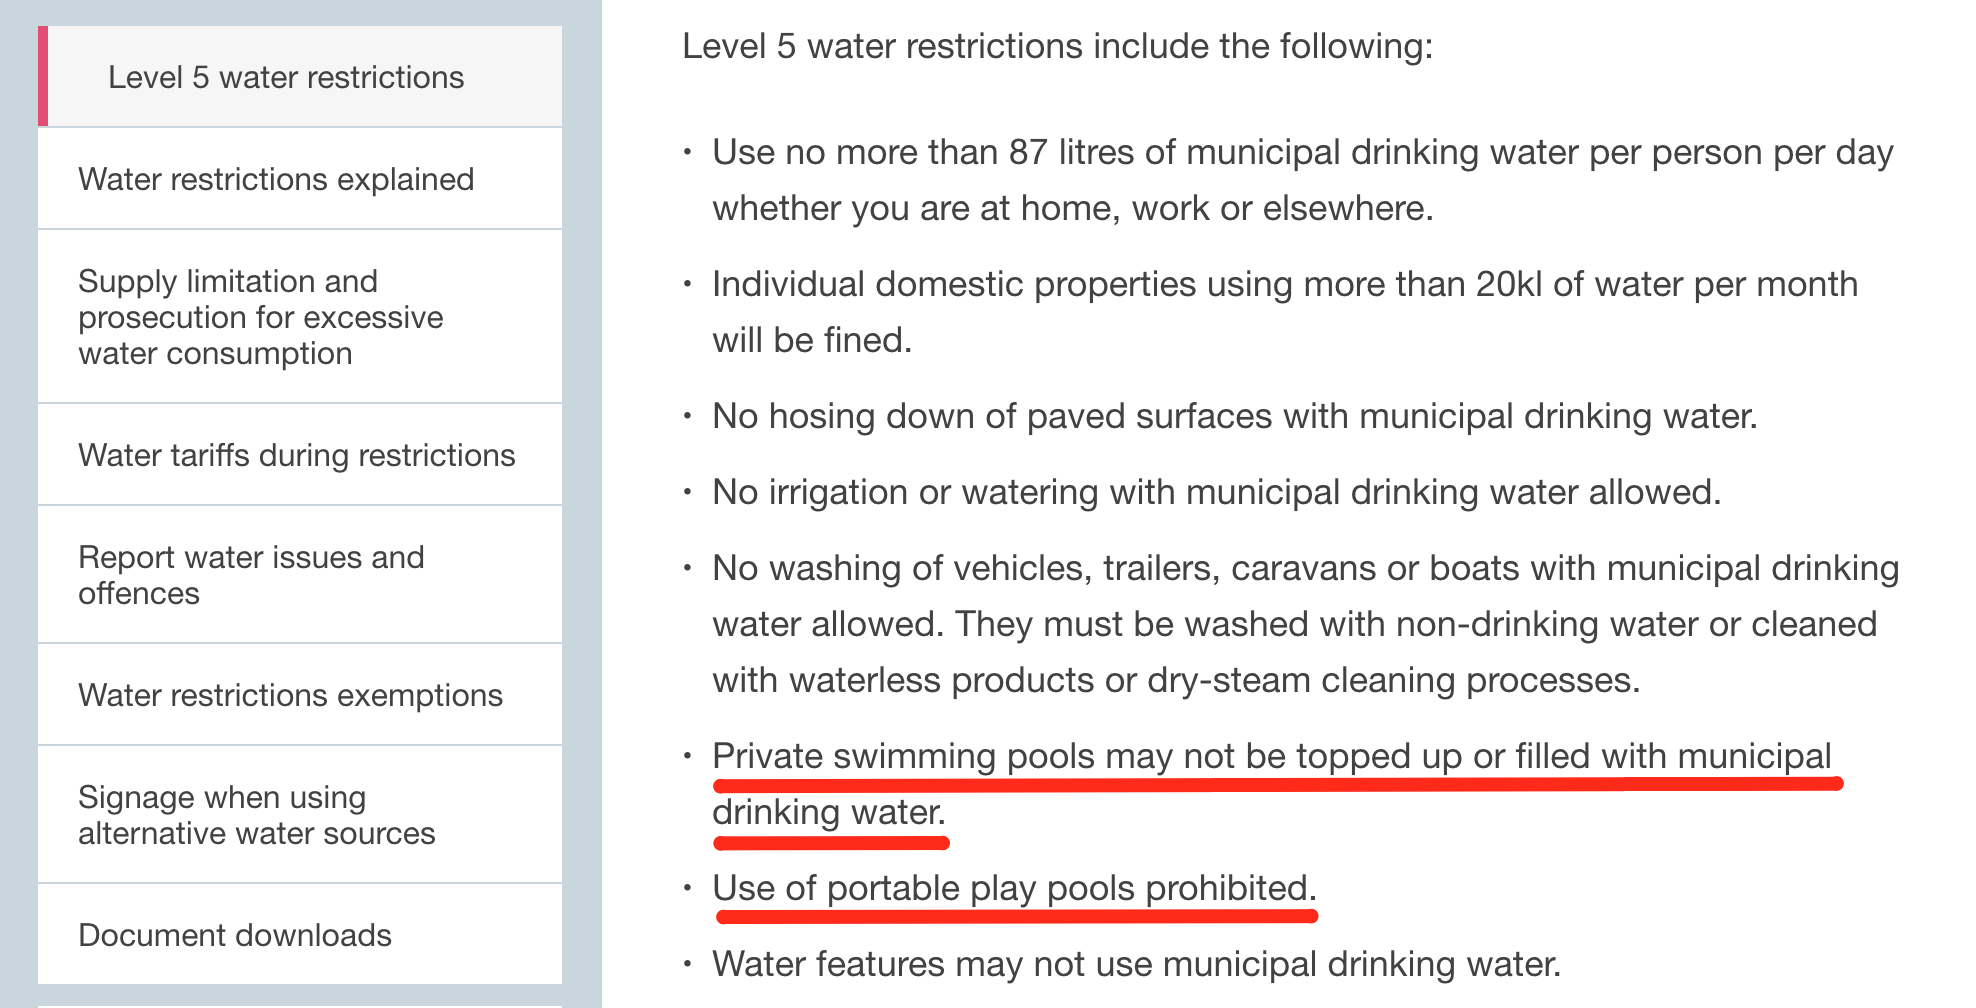 You May Not Top Up Your Swimming Pool With Municipal Water